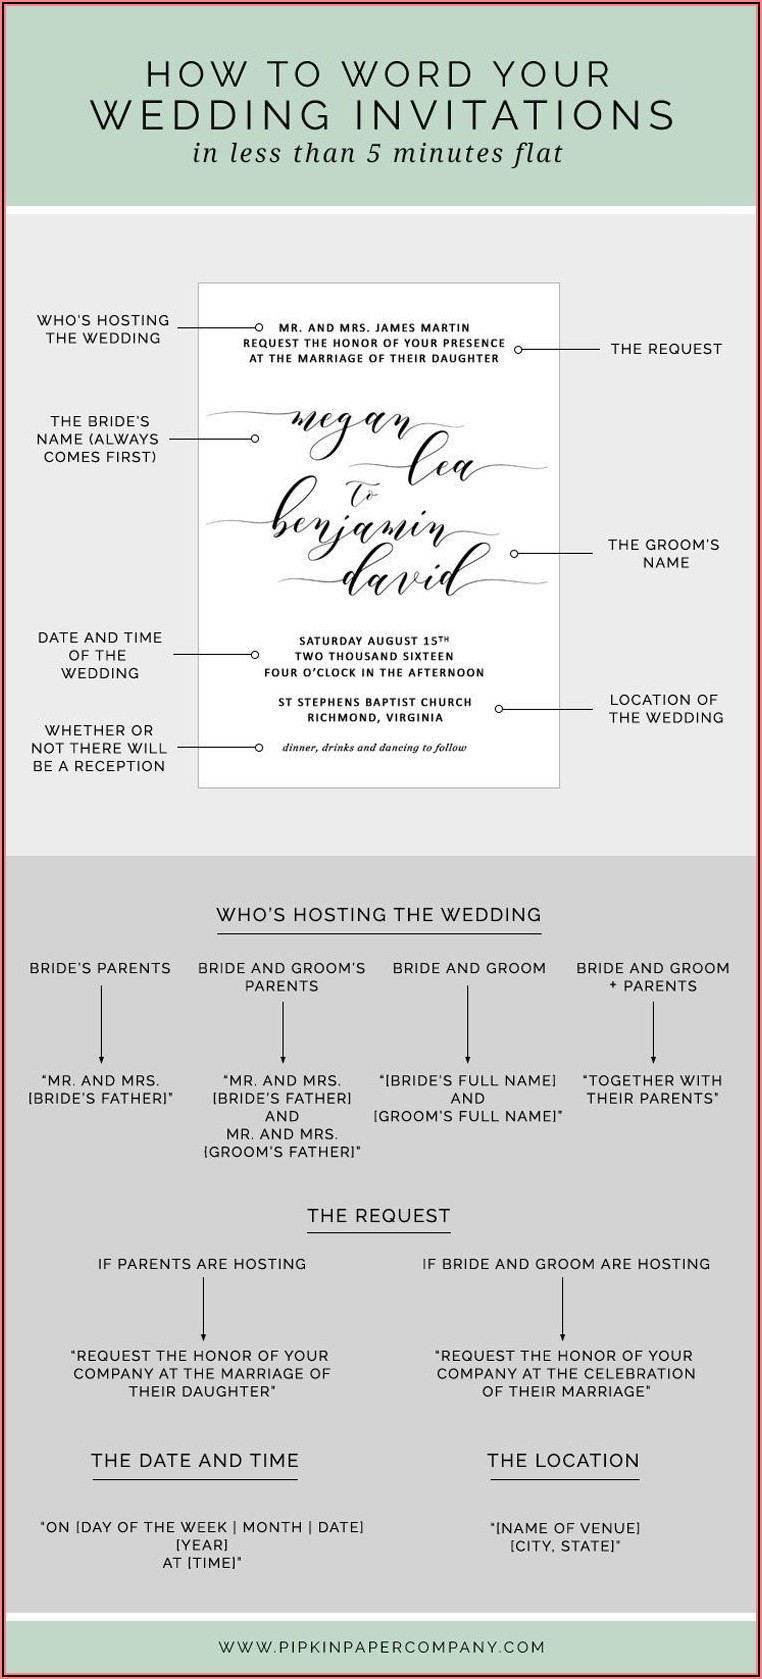 Wedding Invitation Wording Etiquette Both Parents Hosting